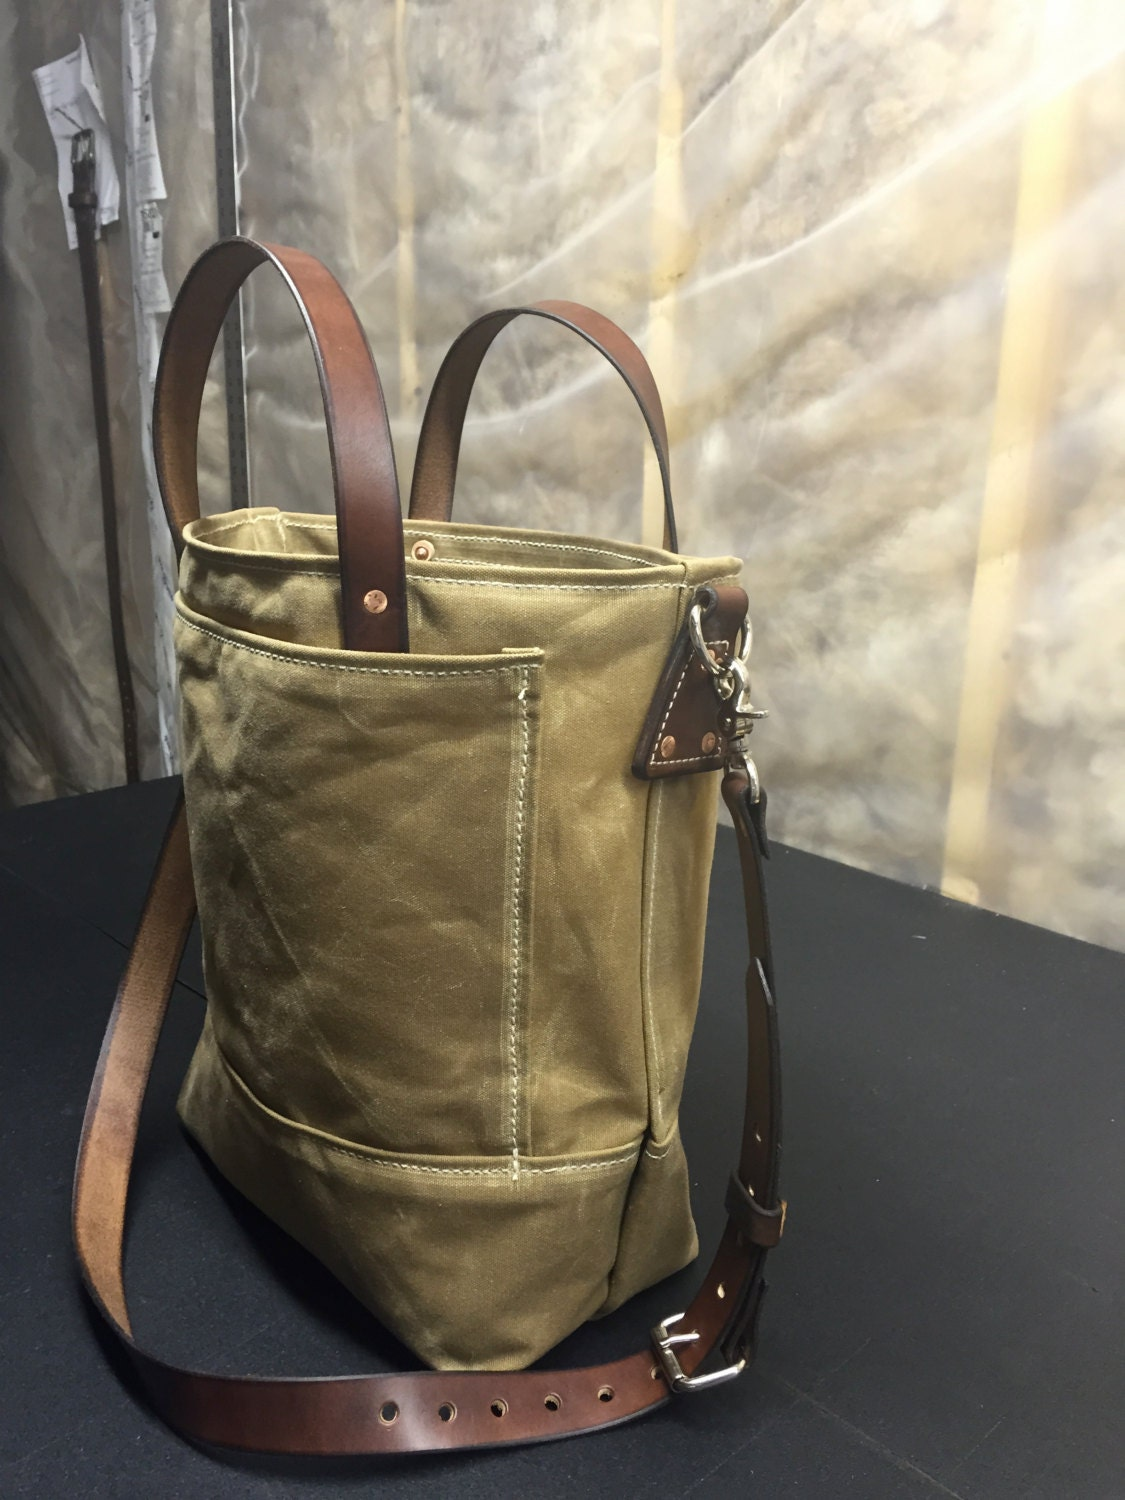 Handmade Waxed Canvas Tote Bag Waxed Canvas Bags Carry